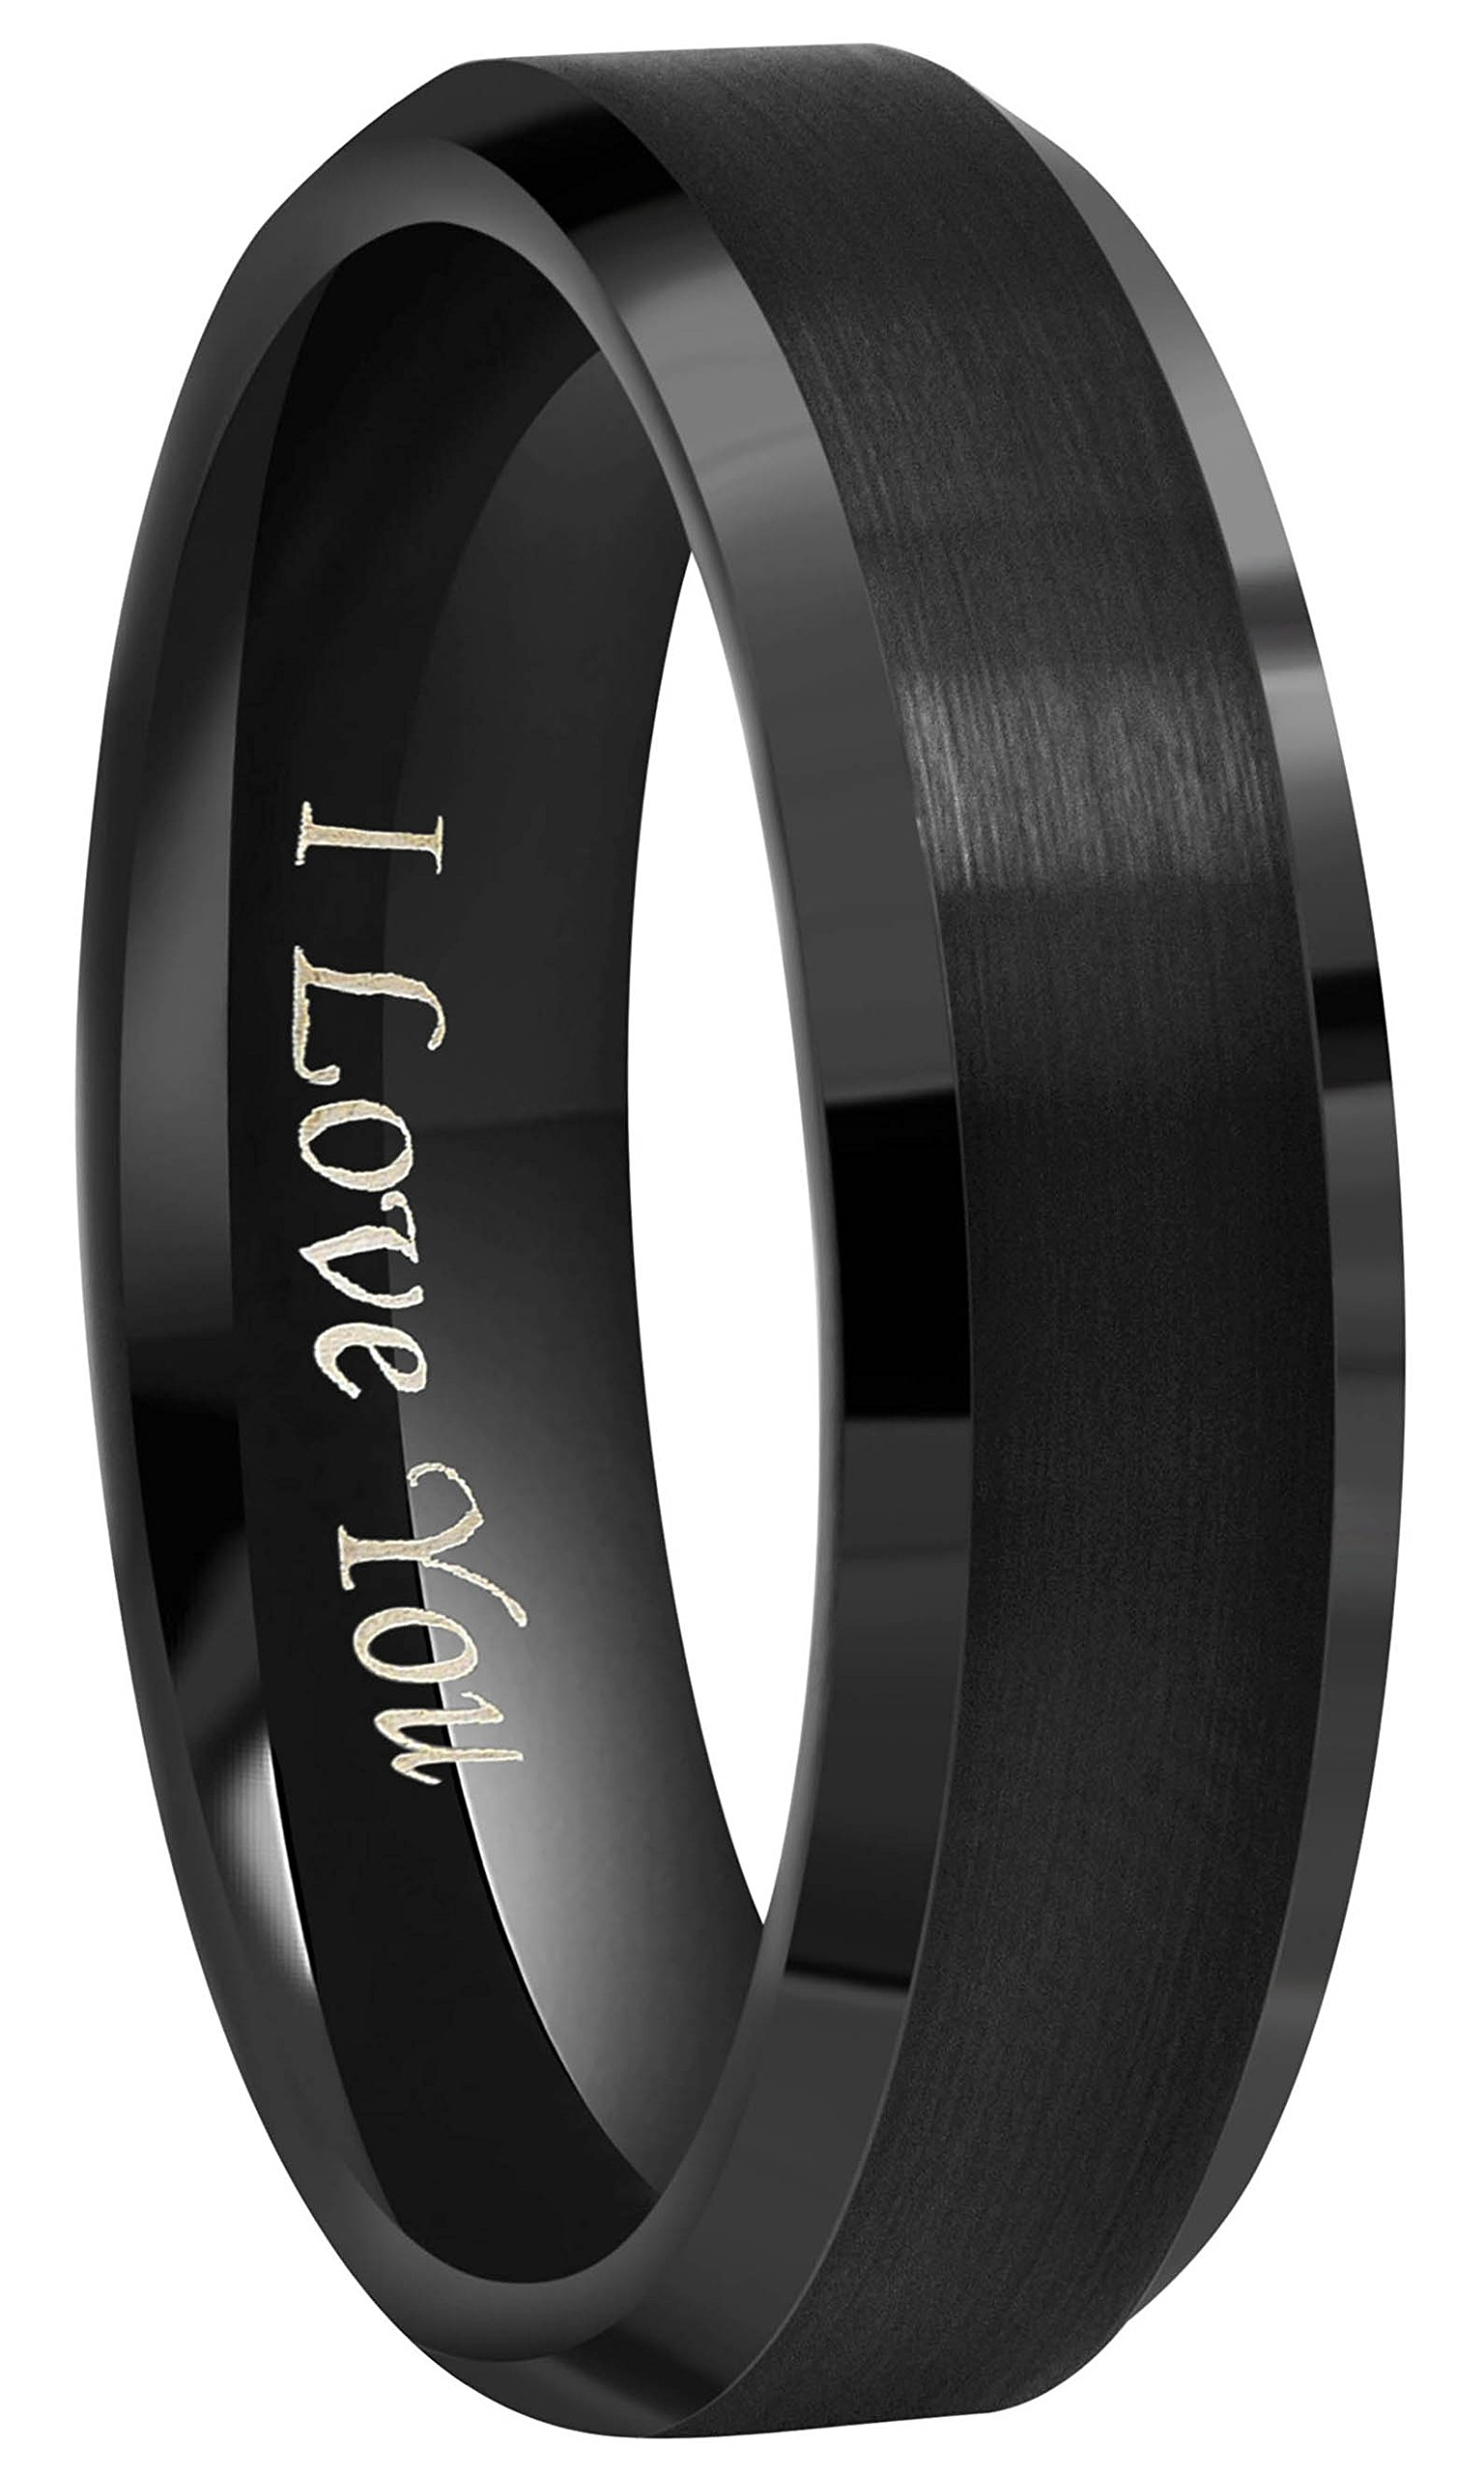 CROWNAL 4mm 6mm 8mm Black Ceramic Wedding Band Ring Men Women Couple Brushed Finish Engraved I Love You Comfort Fit Size 4 To 16(6mm,11.5)